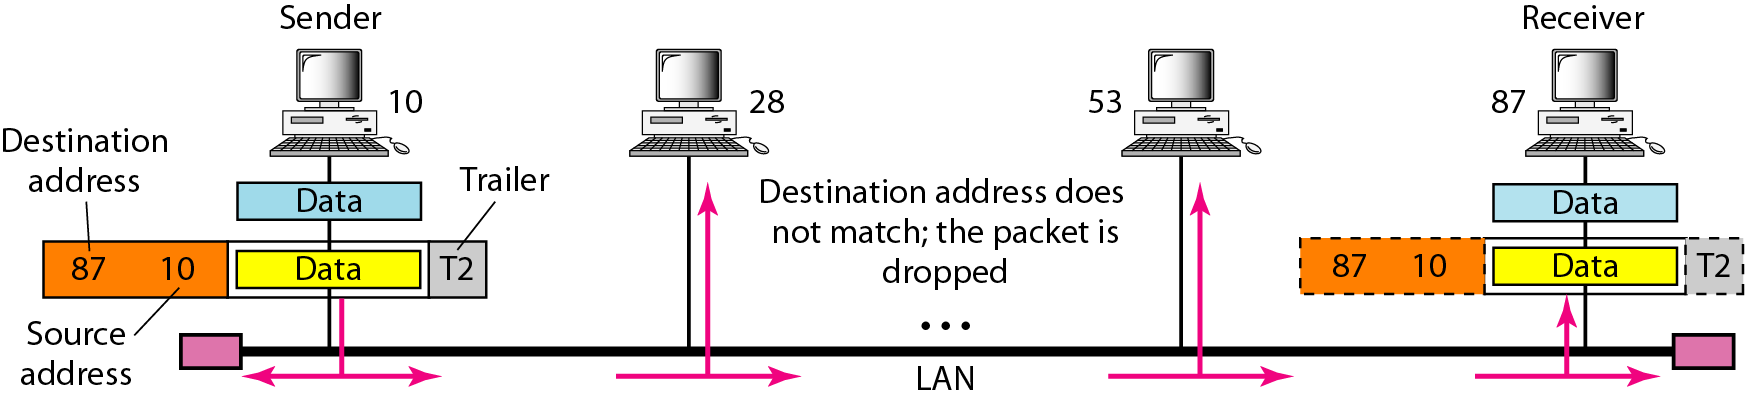 Direcciones físicas: LAN physical address